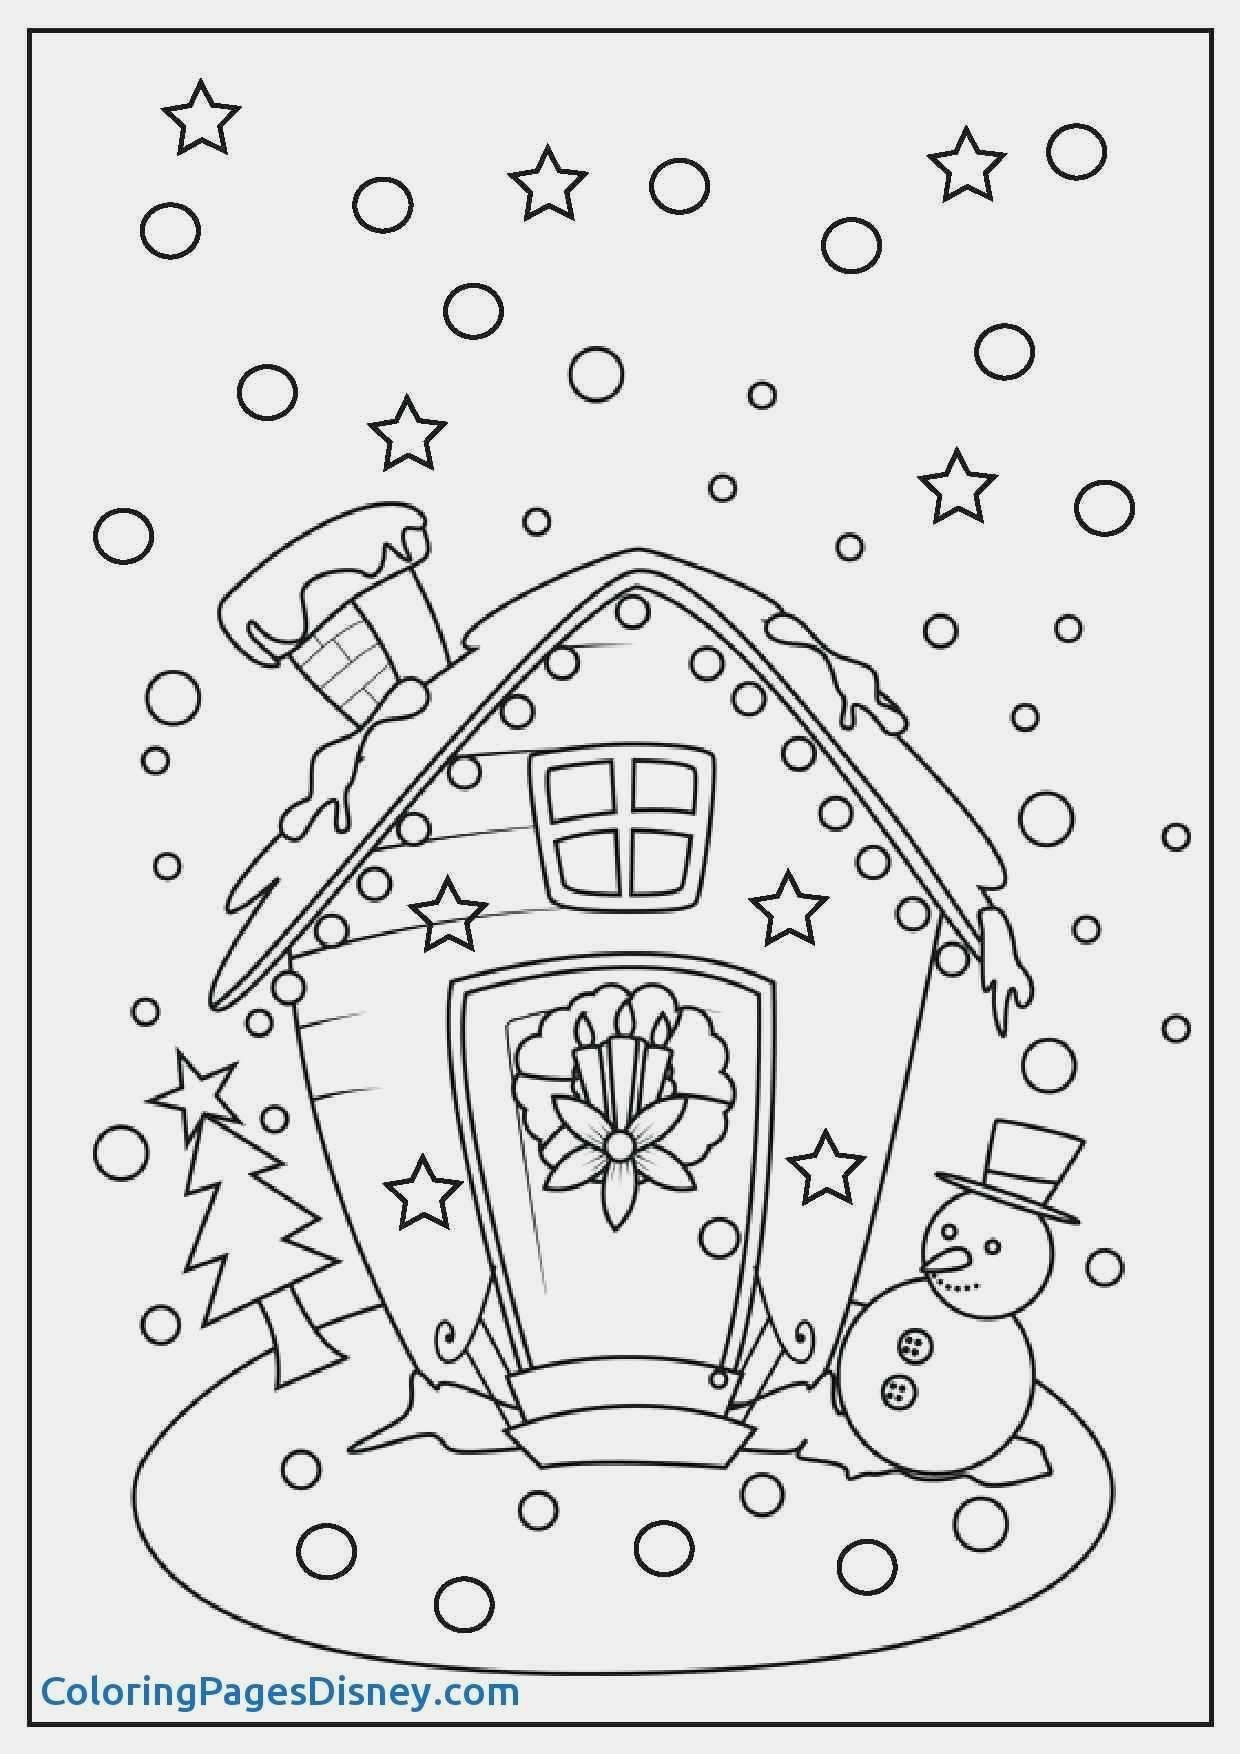 Christmas Educational Coloring Pages With Hello Kitty Printable Activity